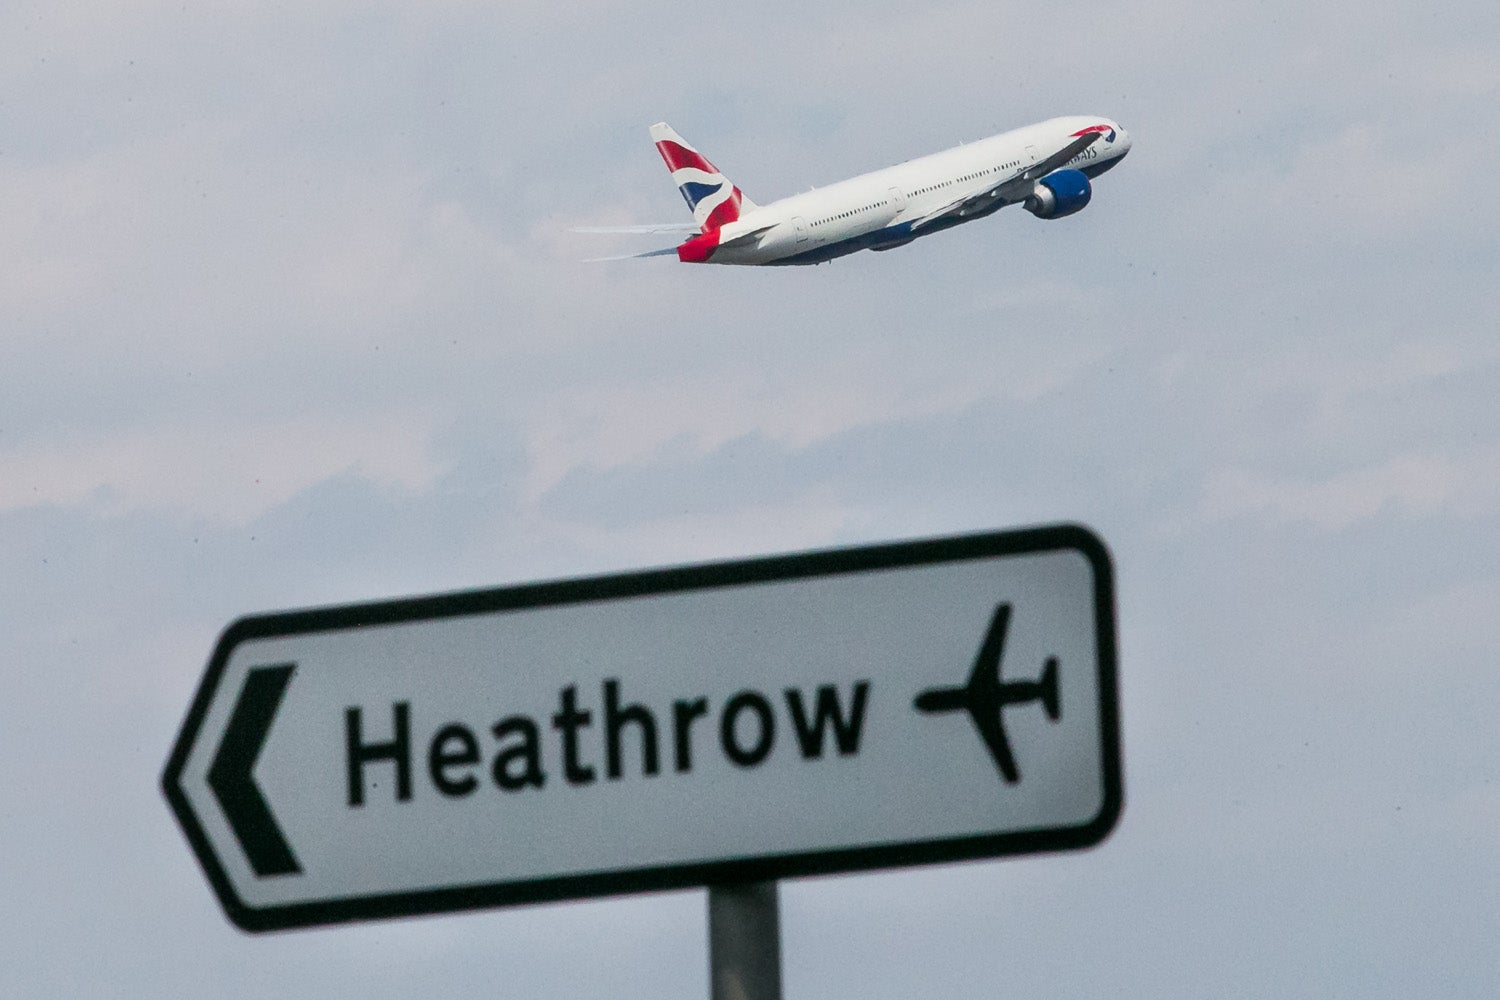 New travel restrictions on passengers arriving in England from South Africa.